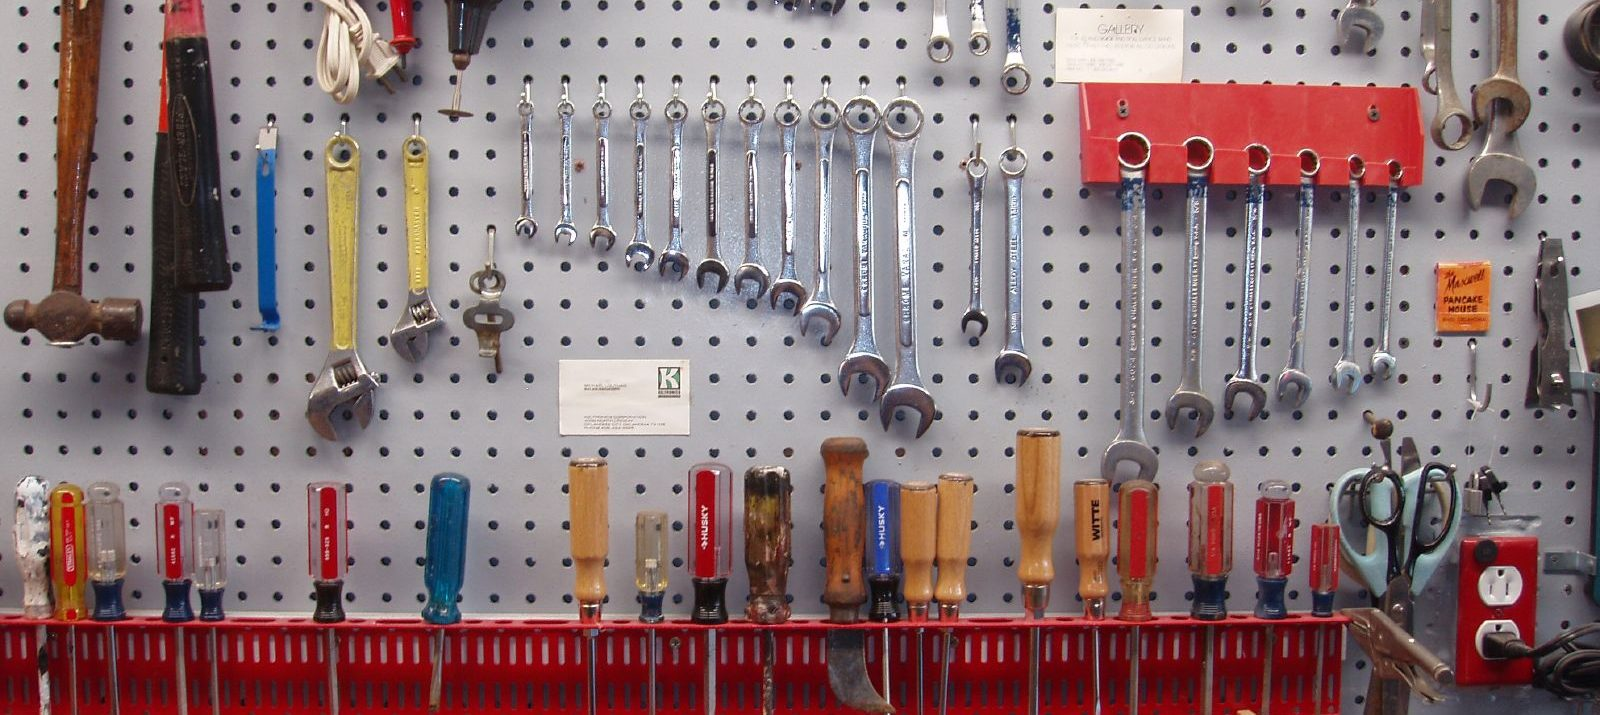 pegboard ideas for garages - 6 Clutch DIY Pegboard Ideas That ll Make Your Garage Smile